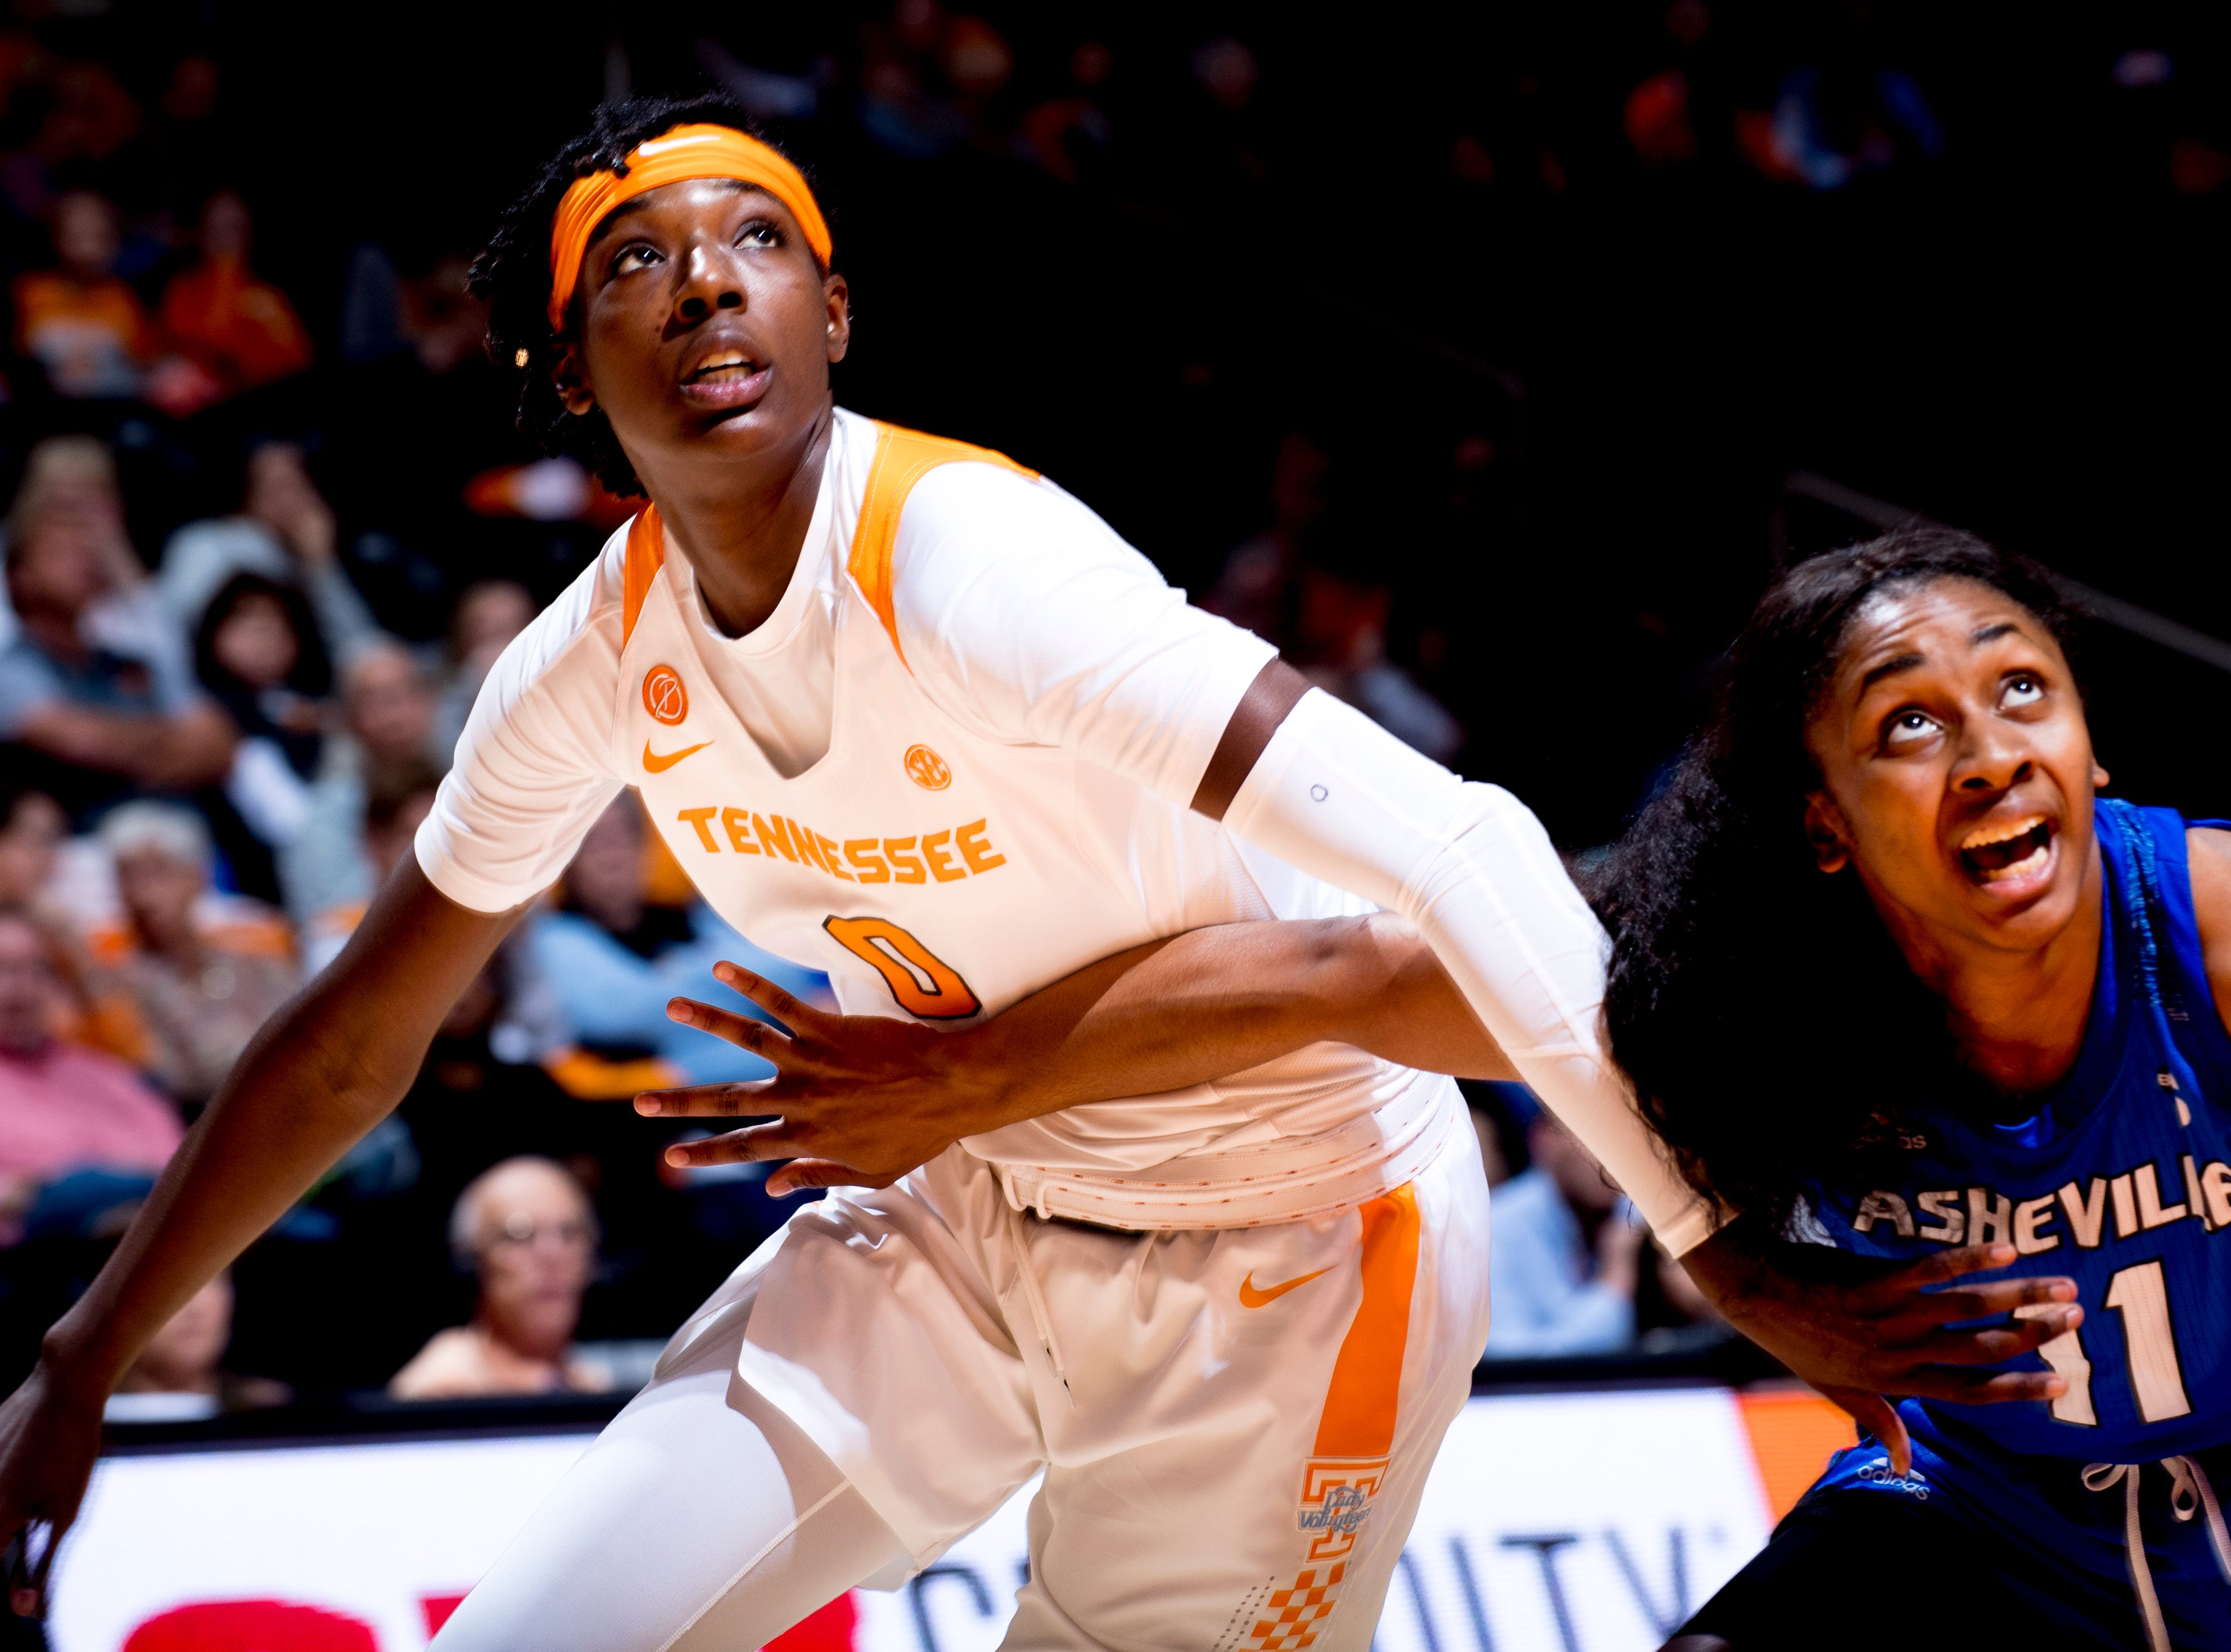 Tennessee guard/forward Rennia Davis (0)  and UNC Asheville  guard Jimeshia Lawson (11) eye the rebound during a game between Tennessee and UNC Asheville at Thompson-Boling Arena in Knoxville, Tennessee on Wednesday, November 14, 2018.